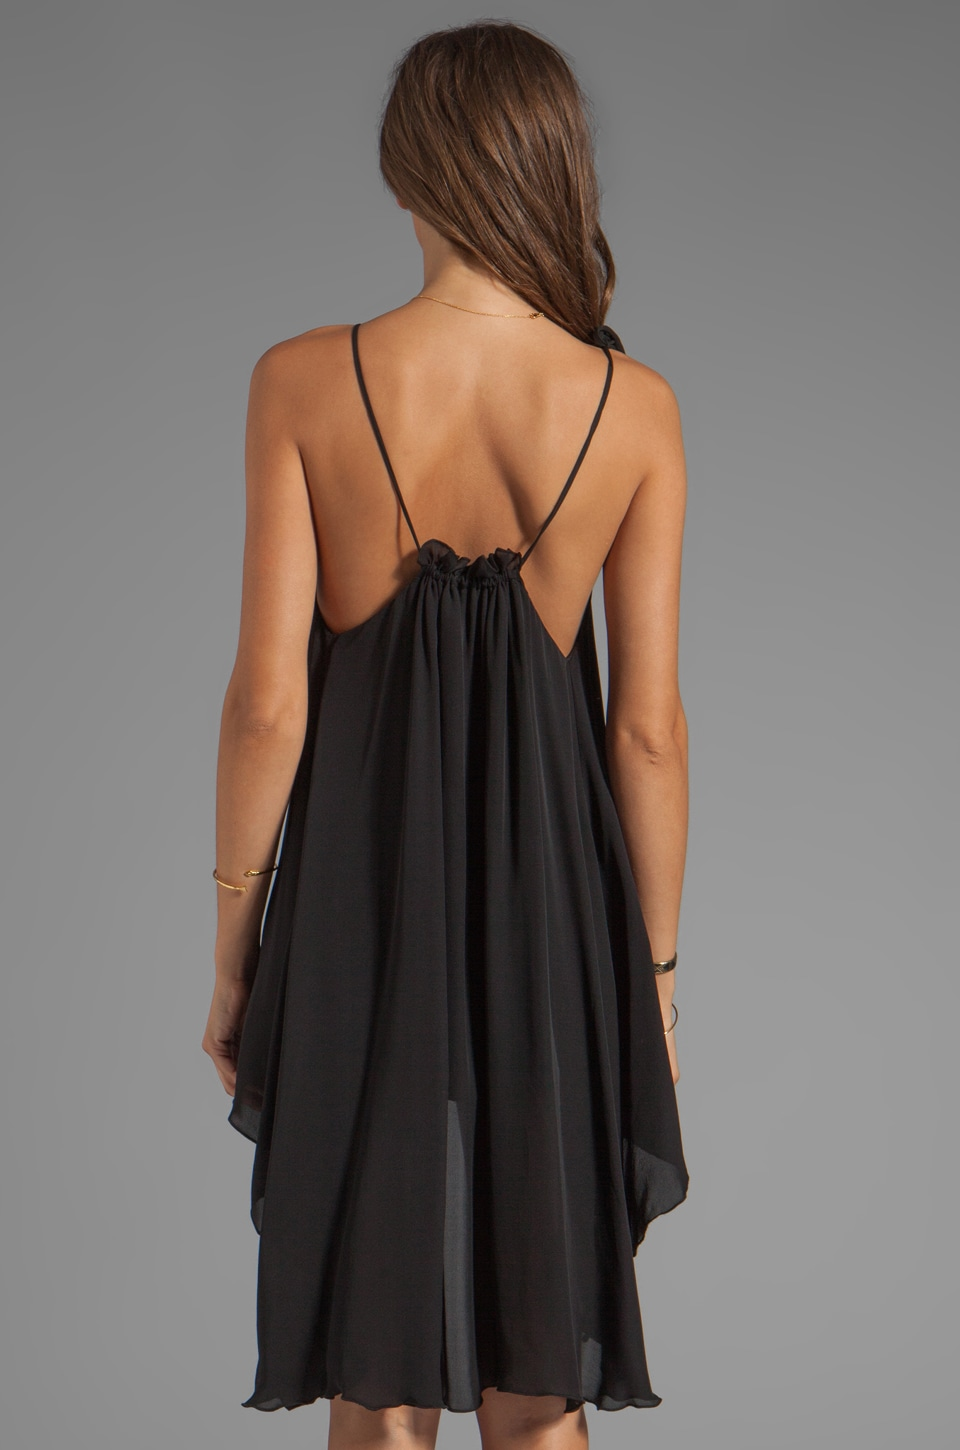 For Love & Lemons Love You Madly Dress in Black